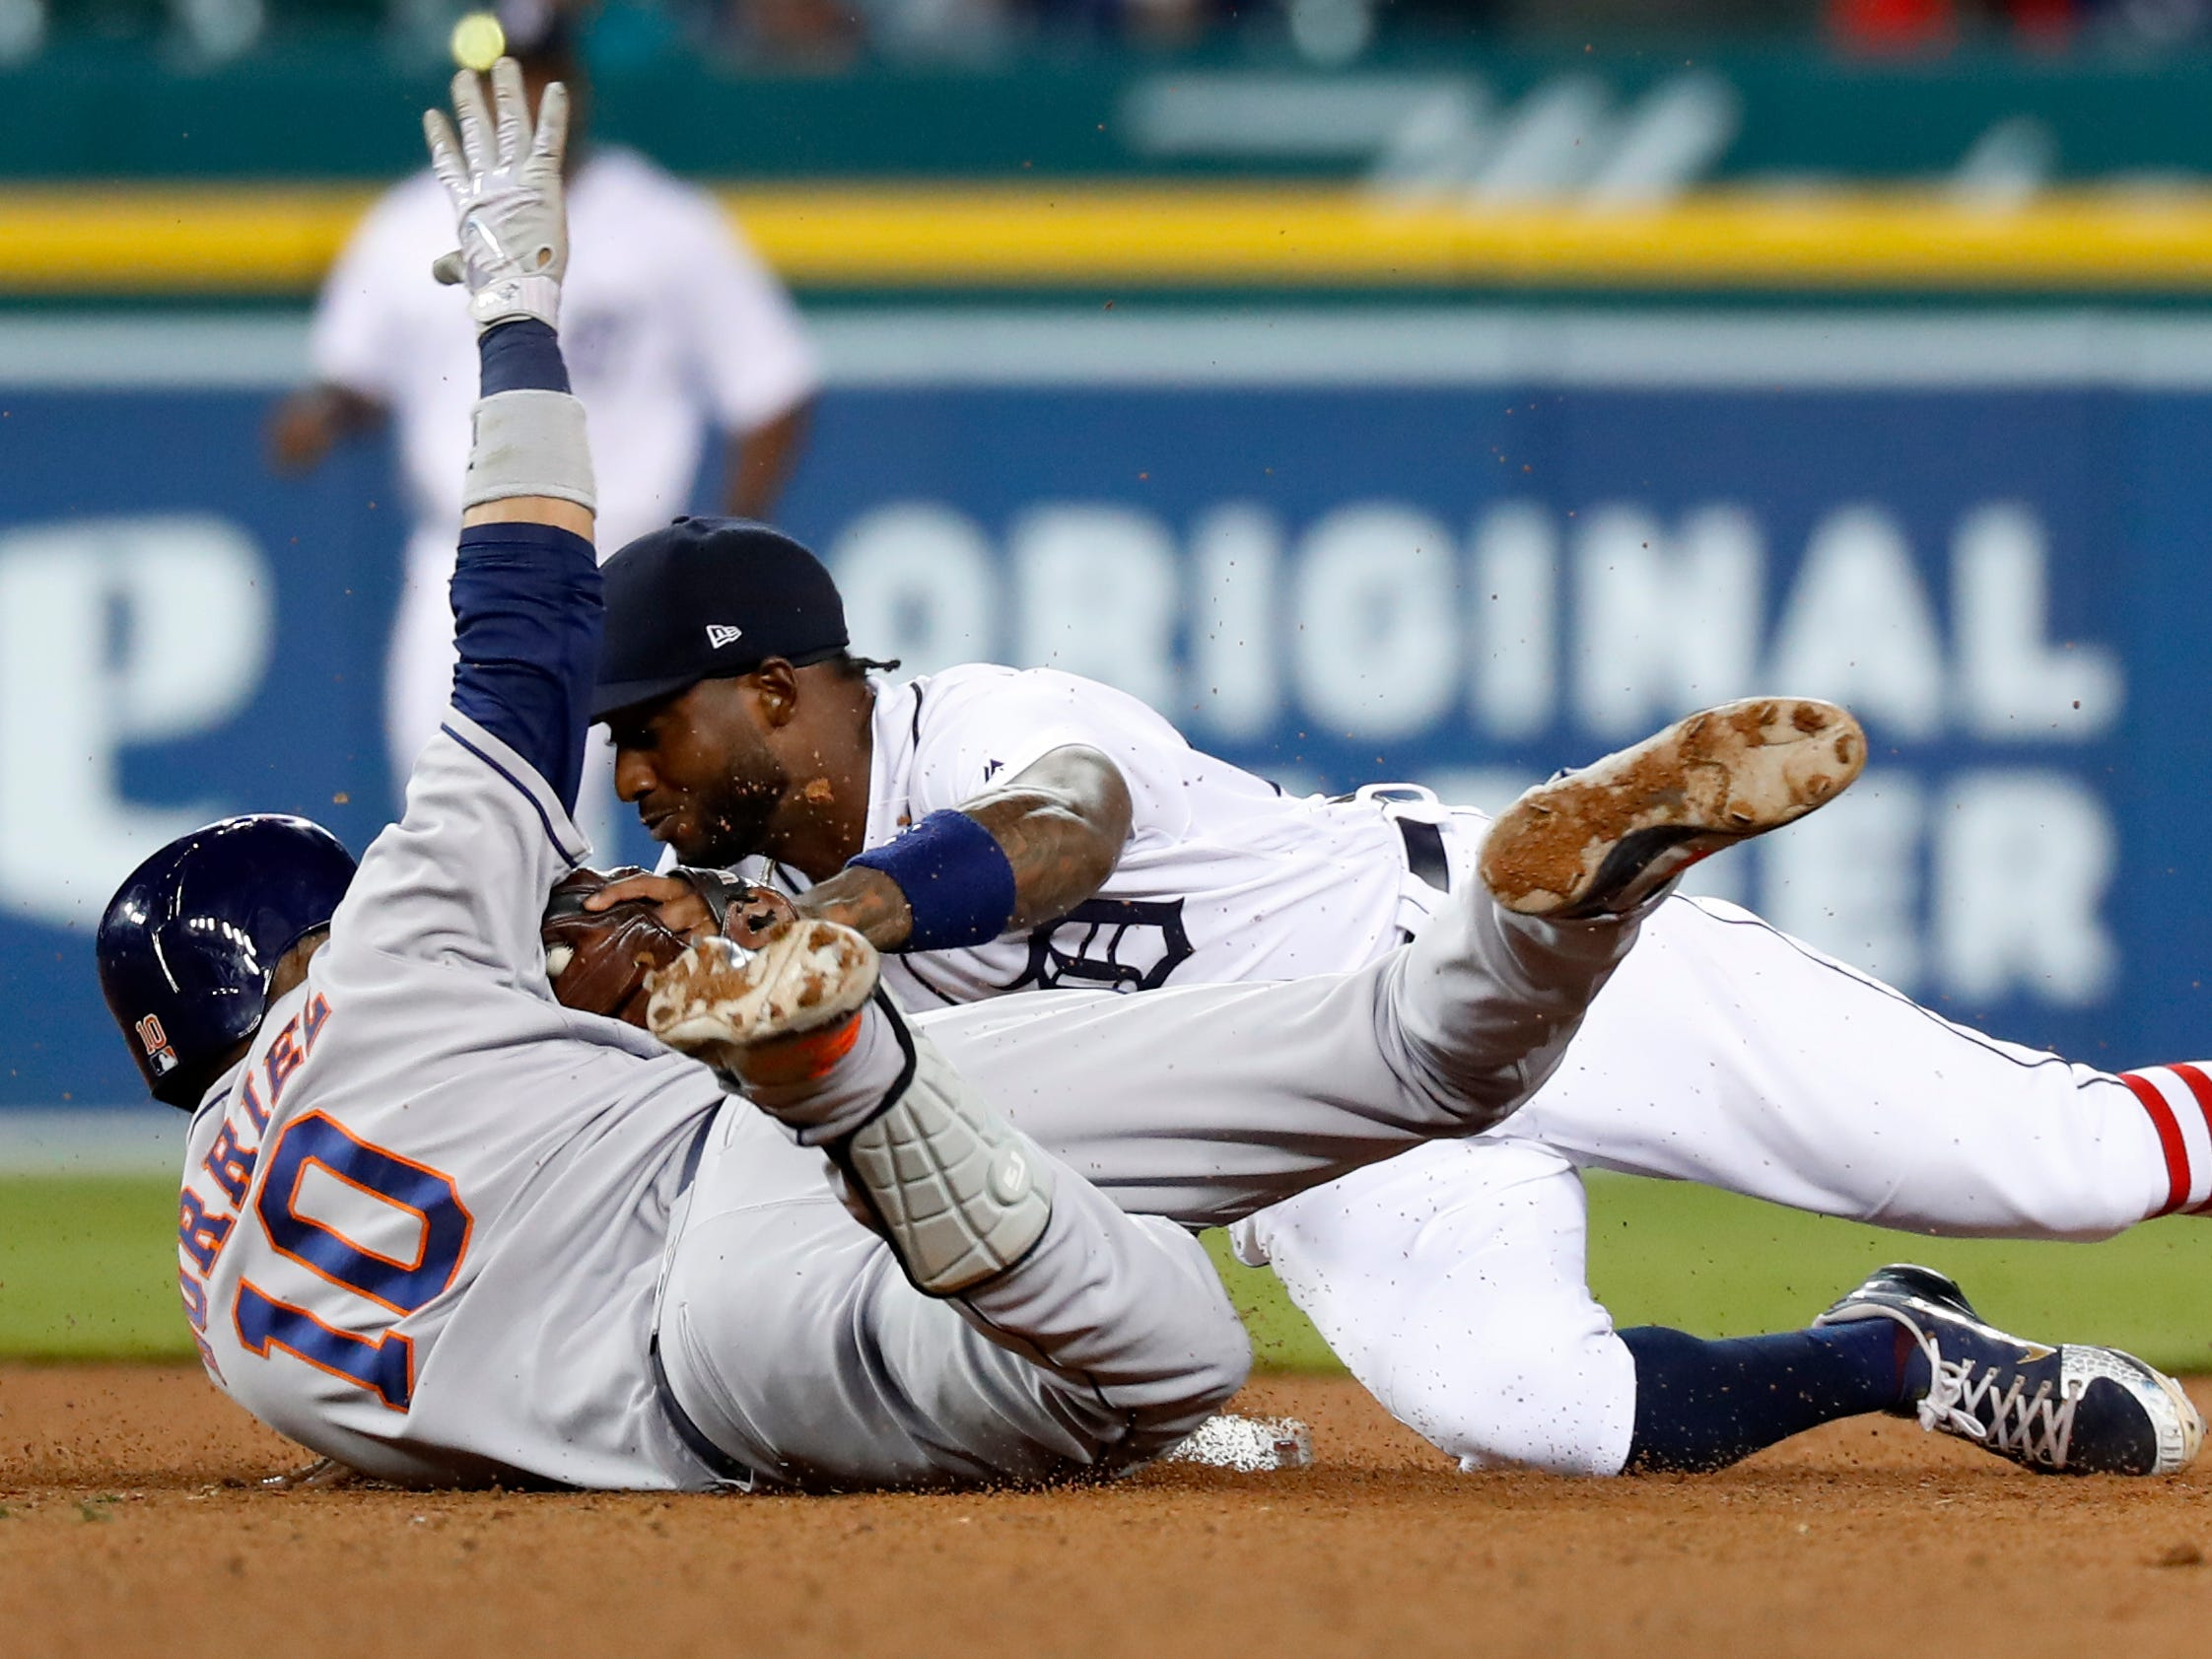 Detroit Tigers shortstop Niko Goodrum (28) tags Houston Astros' Yuli Gurriel (10) out at second base in the ninth inning.